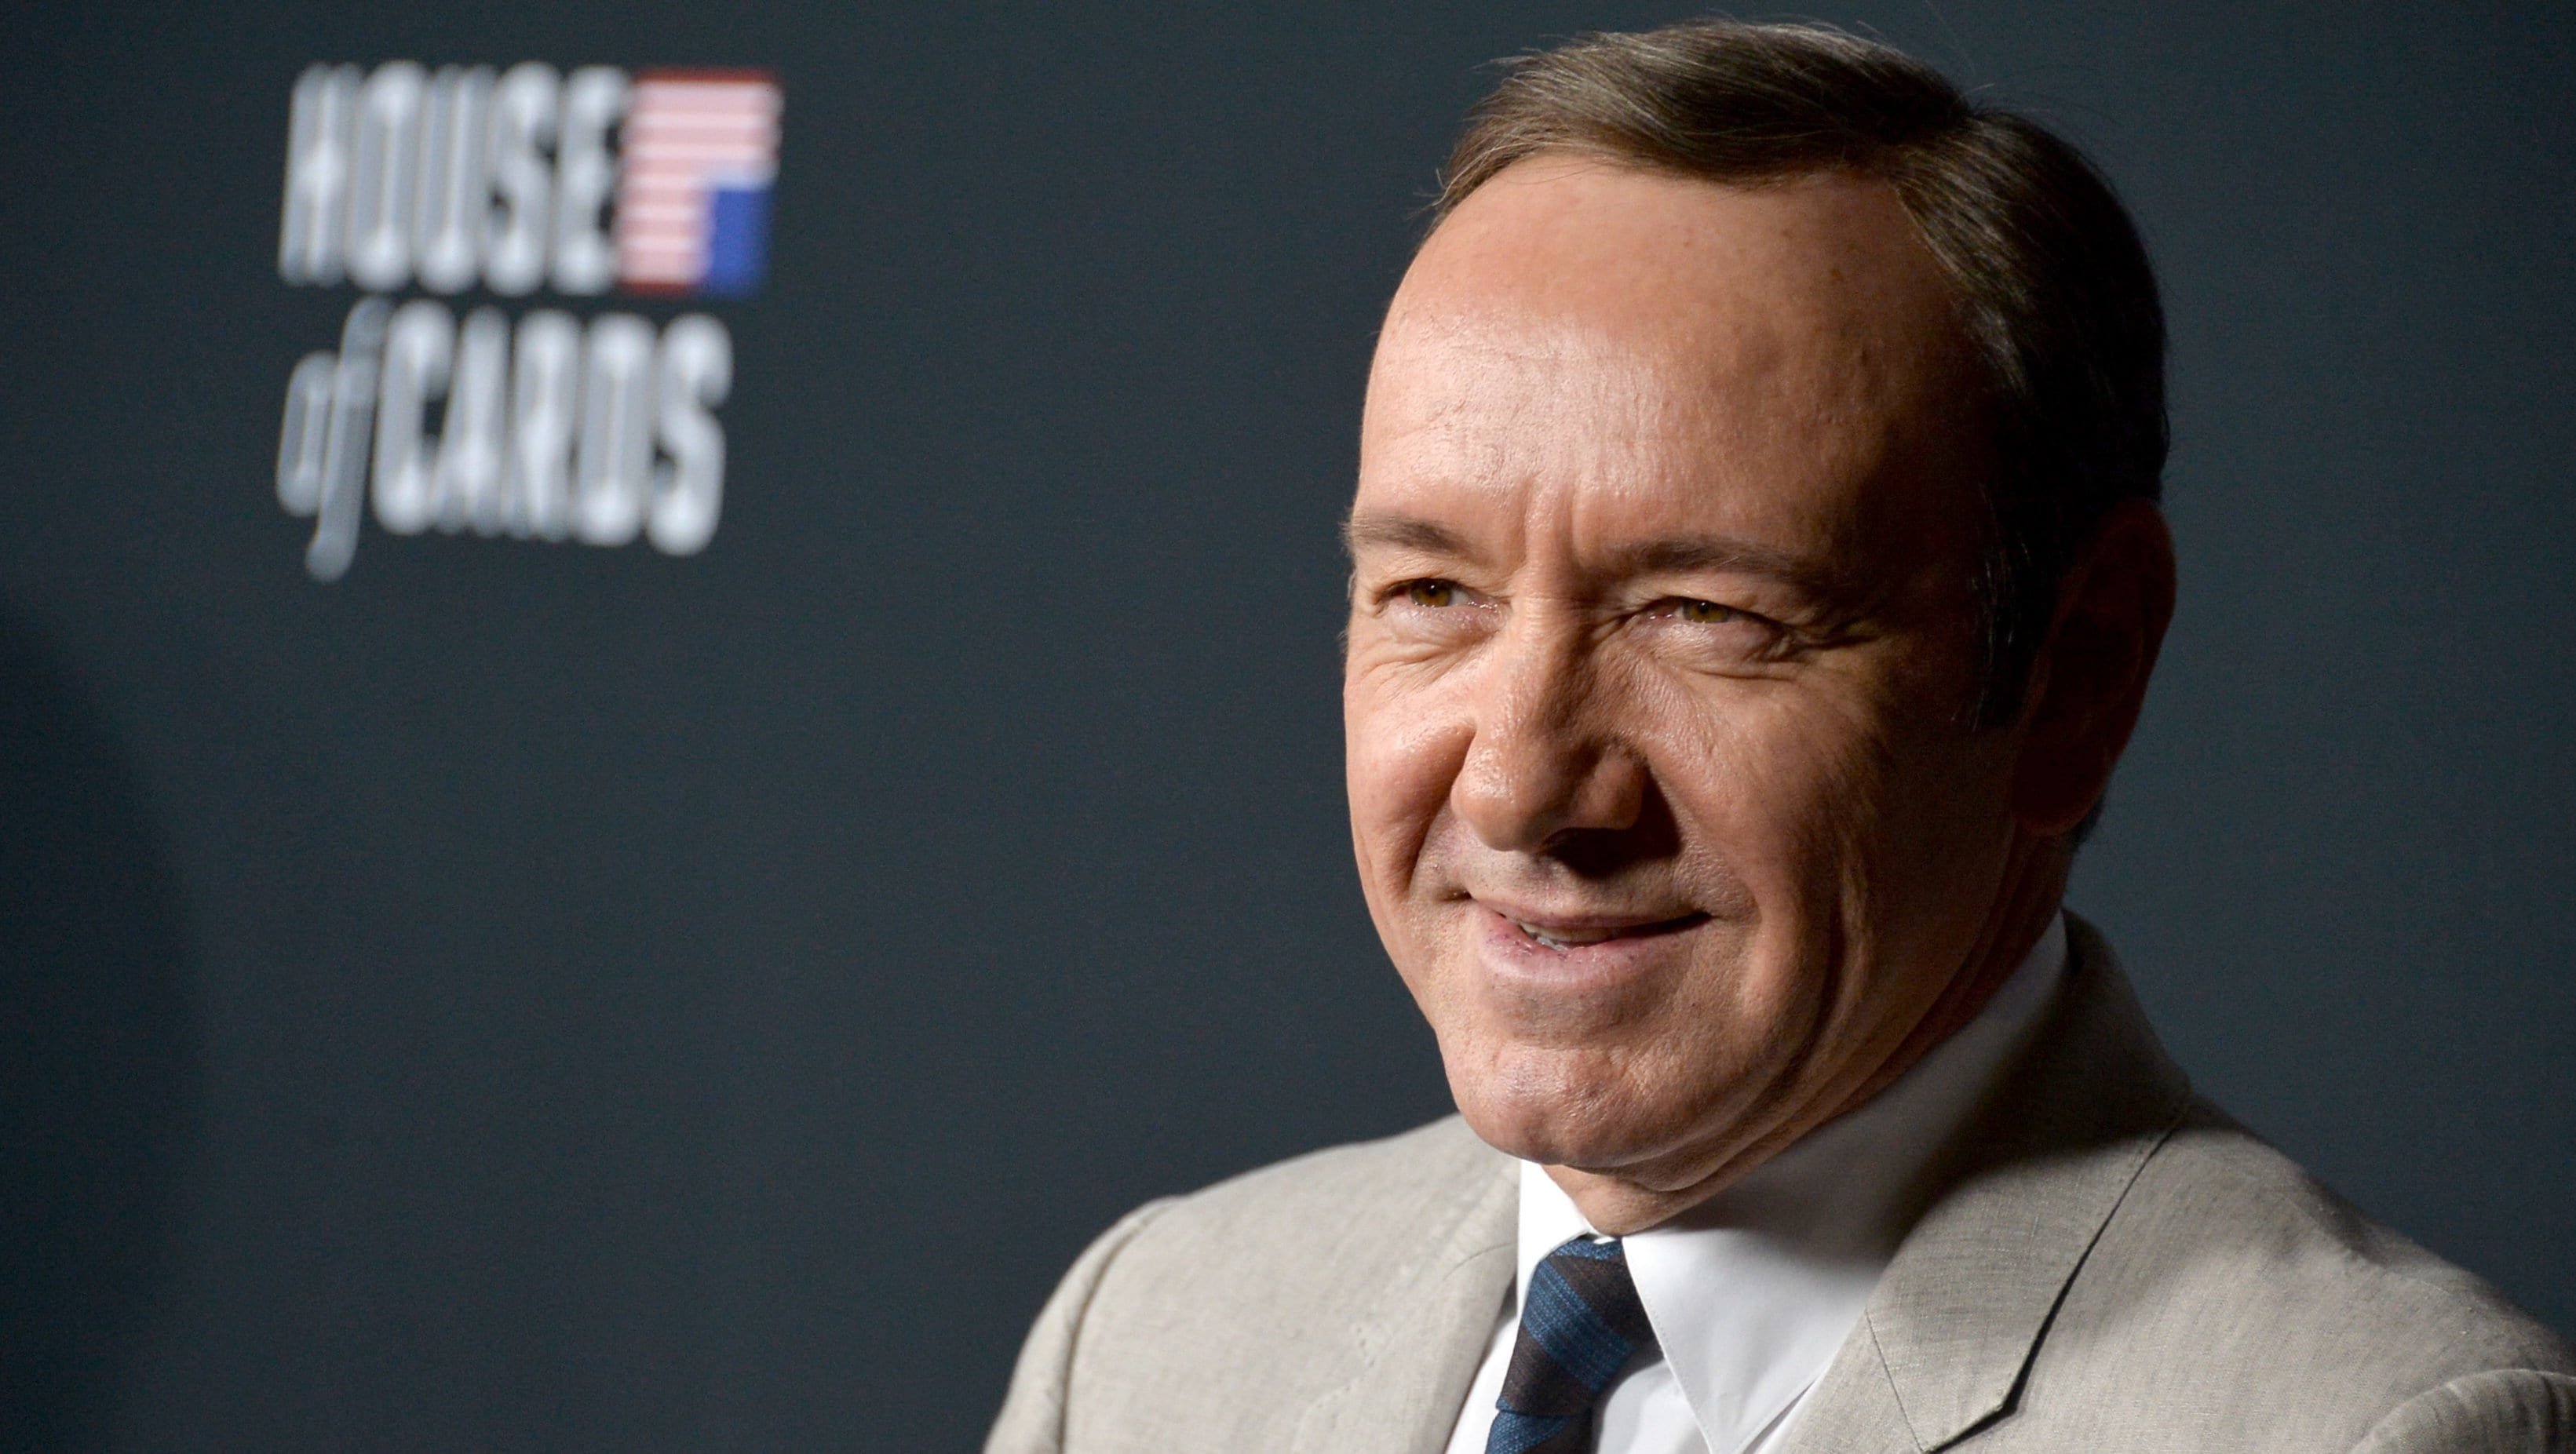 Kevin Spacey is racist against blacks, security company boss alleges Video